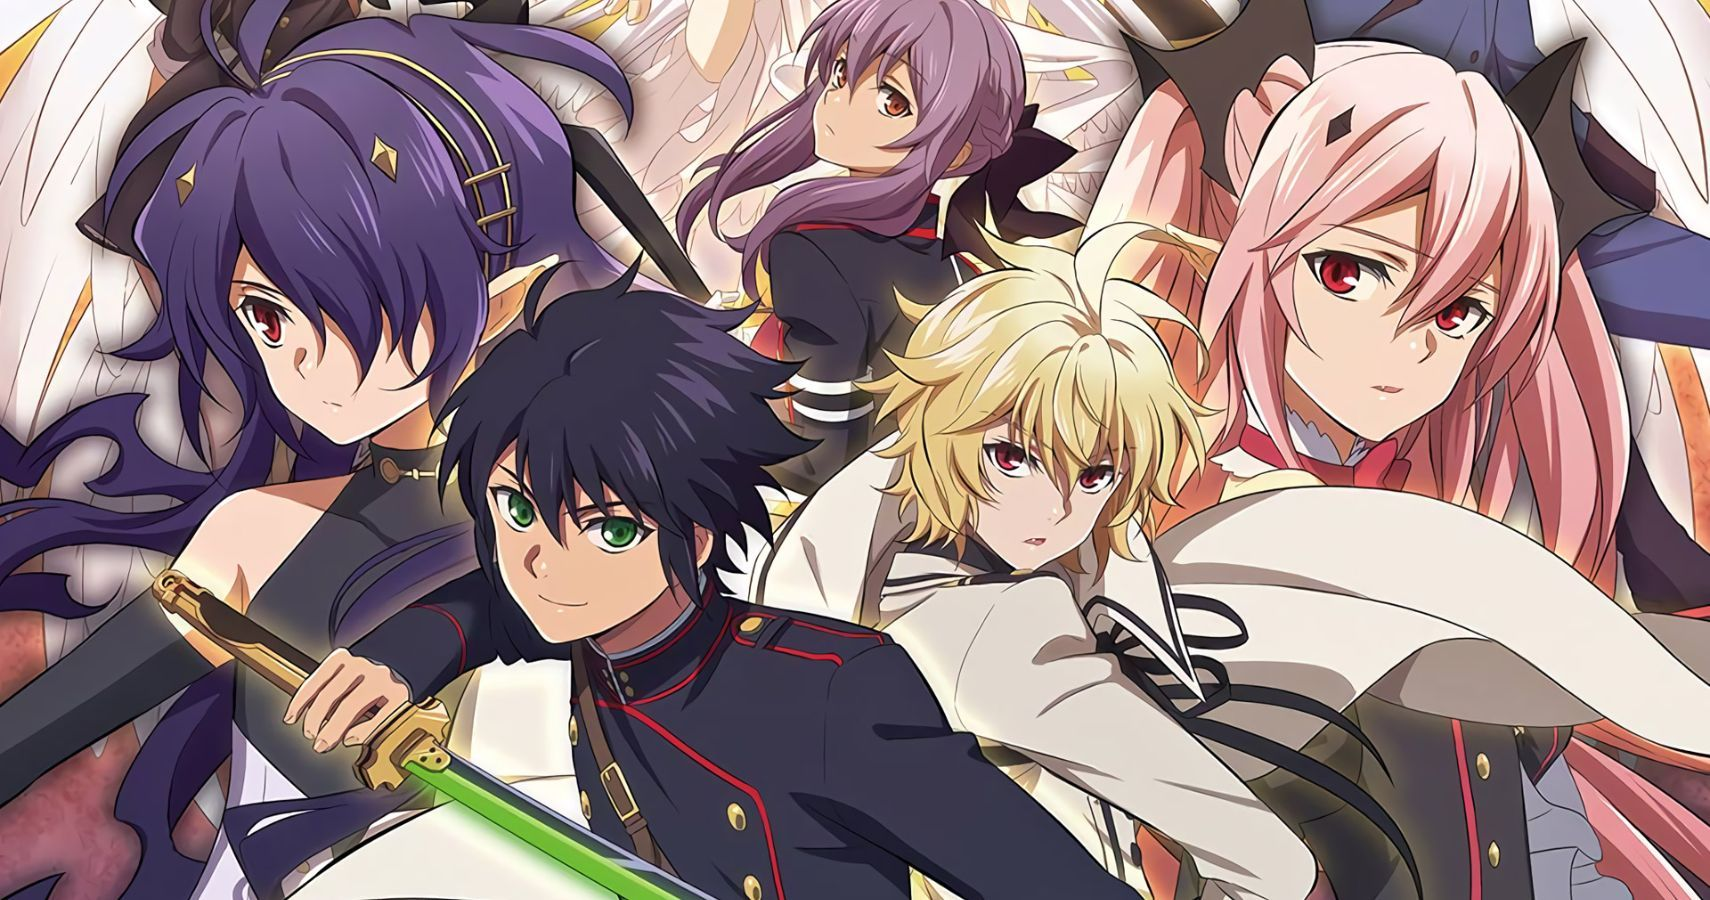 Seraph Of The End: 10 Things That Make Zero Sense About The Characters